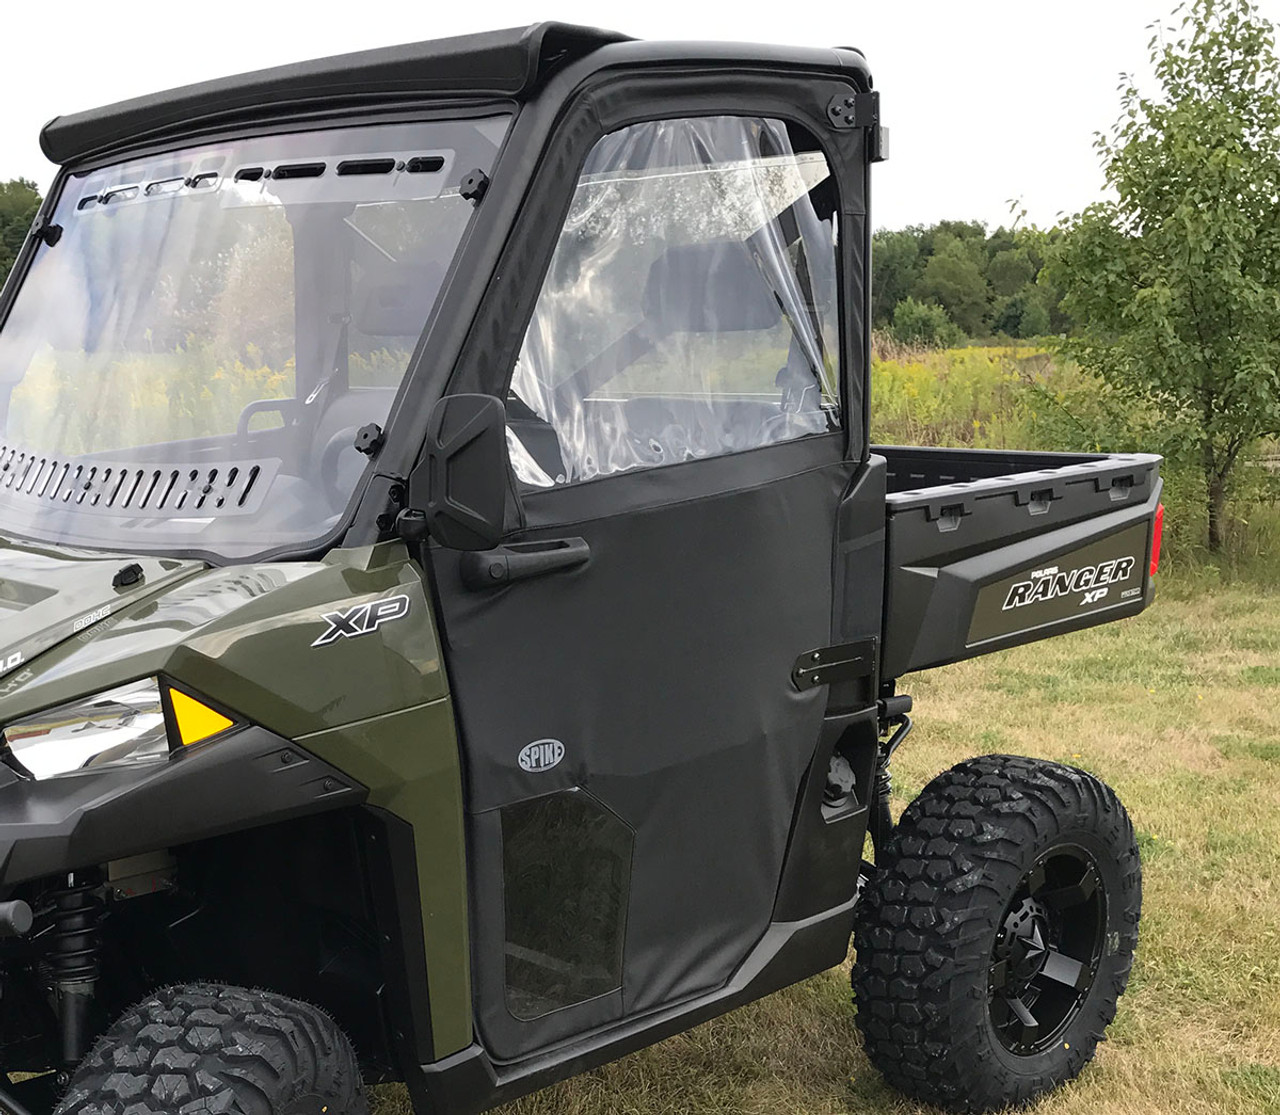 Polaris Ranger Full Size (Pro-fit) Door Kit by SPIKE & Polaris Ranger Full Size (Pro-fit) Door Kit by SPIKE - Spike Powersports